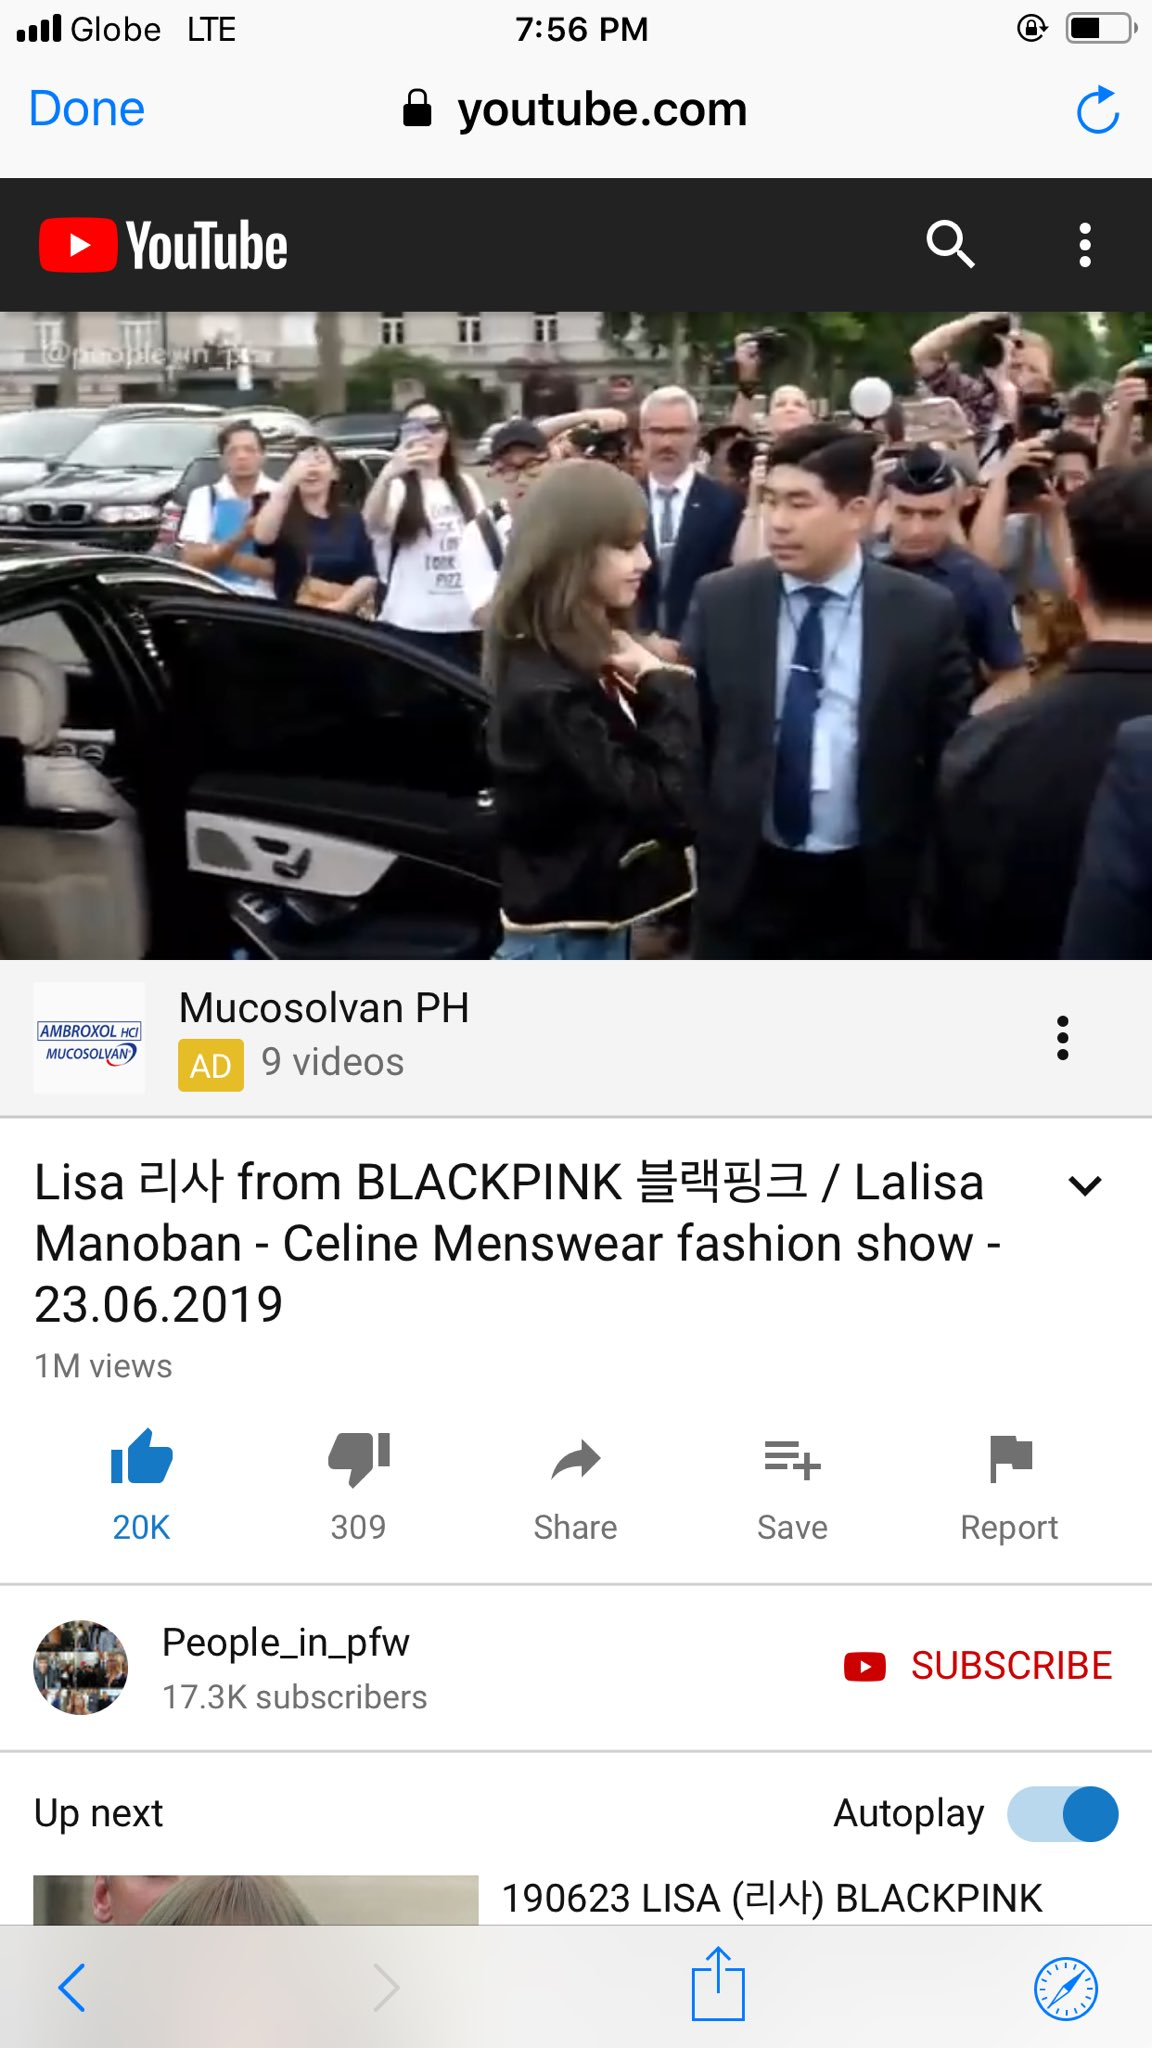 Lori On Twitter This Celine Menswear Fashion Show Video Of Lisa On Youtube Has Already Over 1m Views Lisa S Power Ygofficialblink Celineofficial Https T Co Eumyq7xfyp Lisaxceline Https T Co O6rjju5xbi